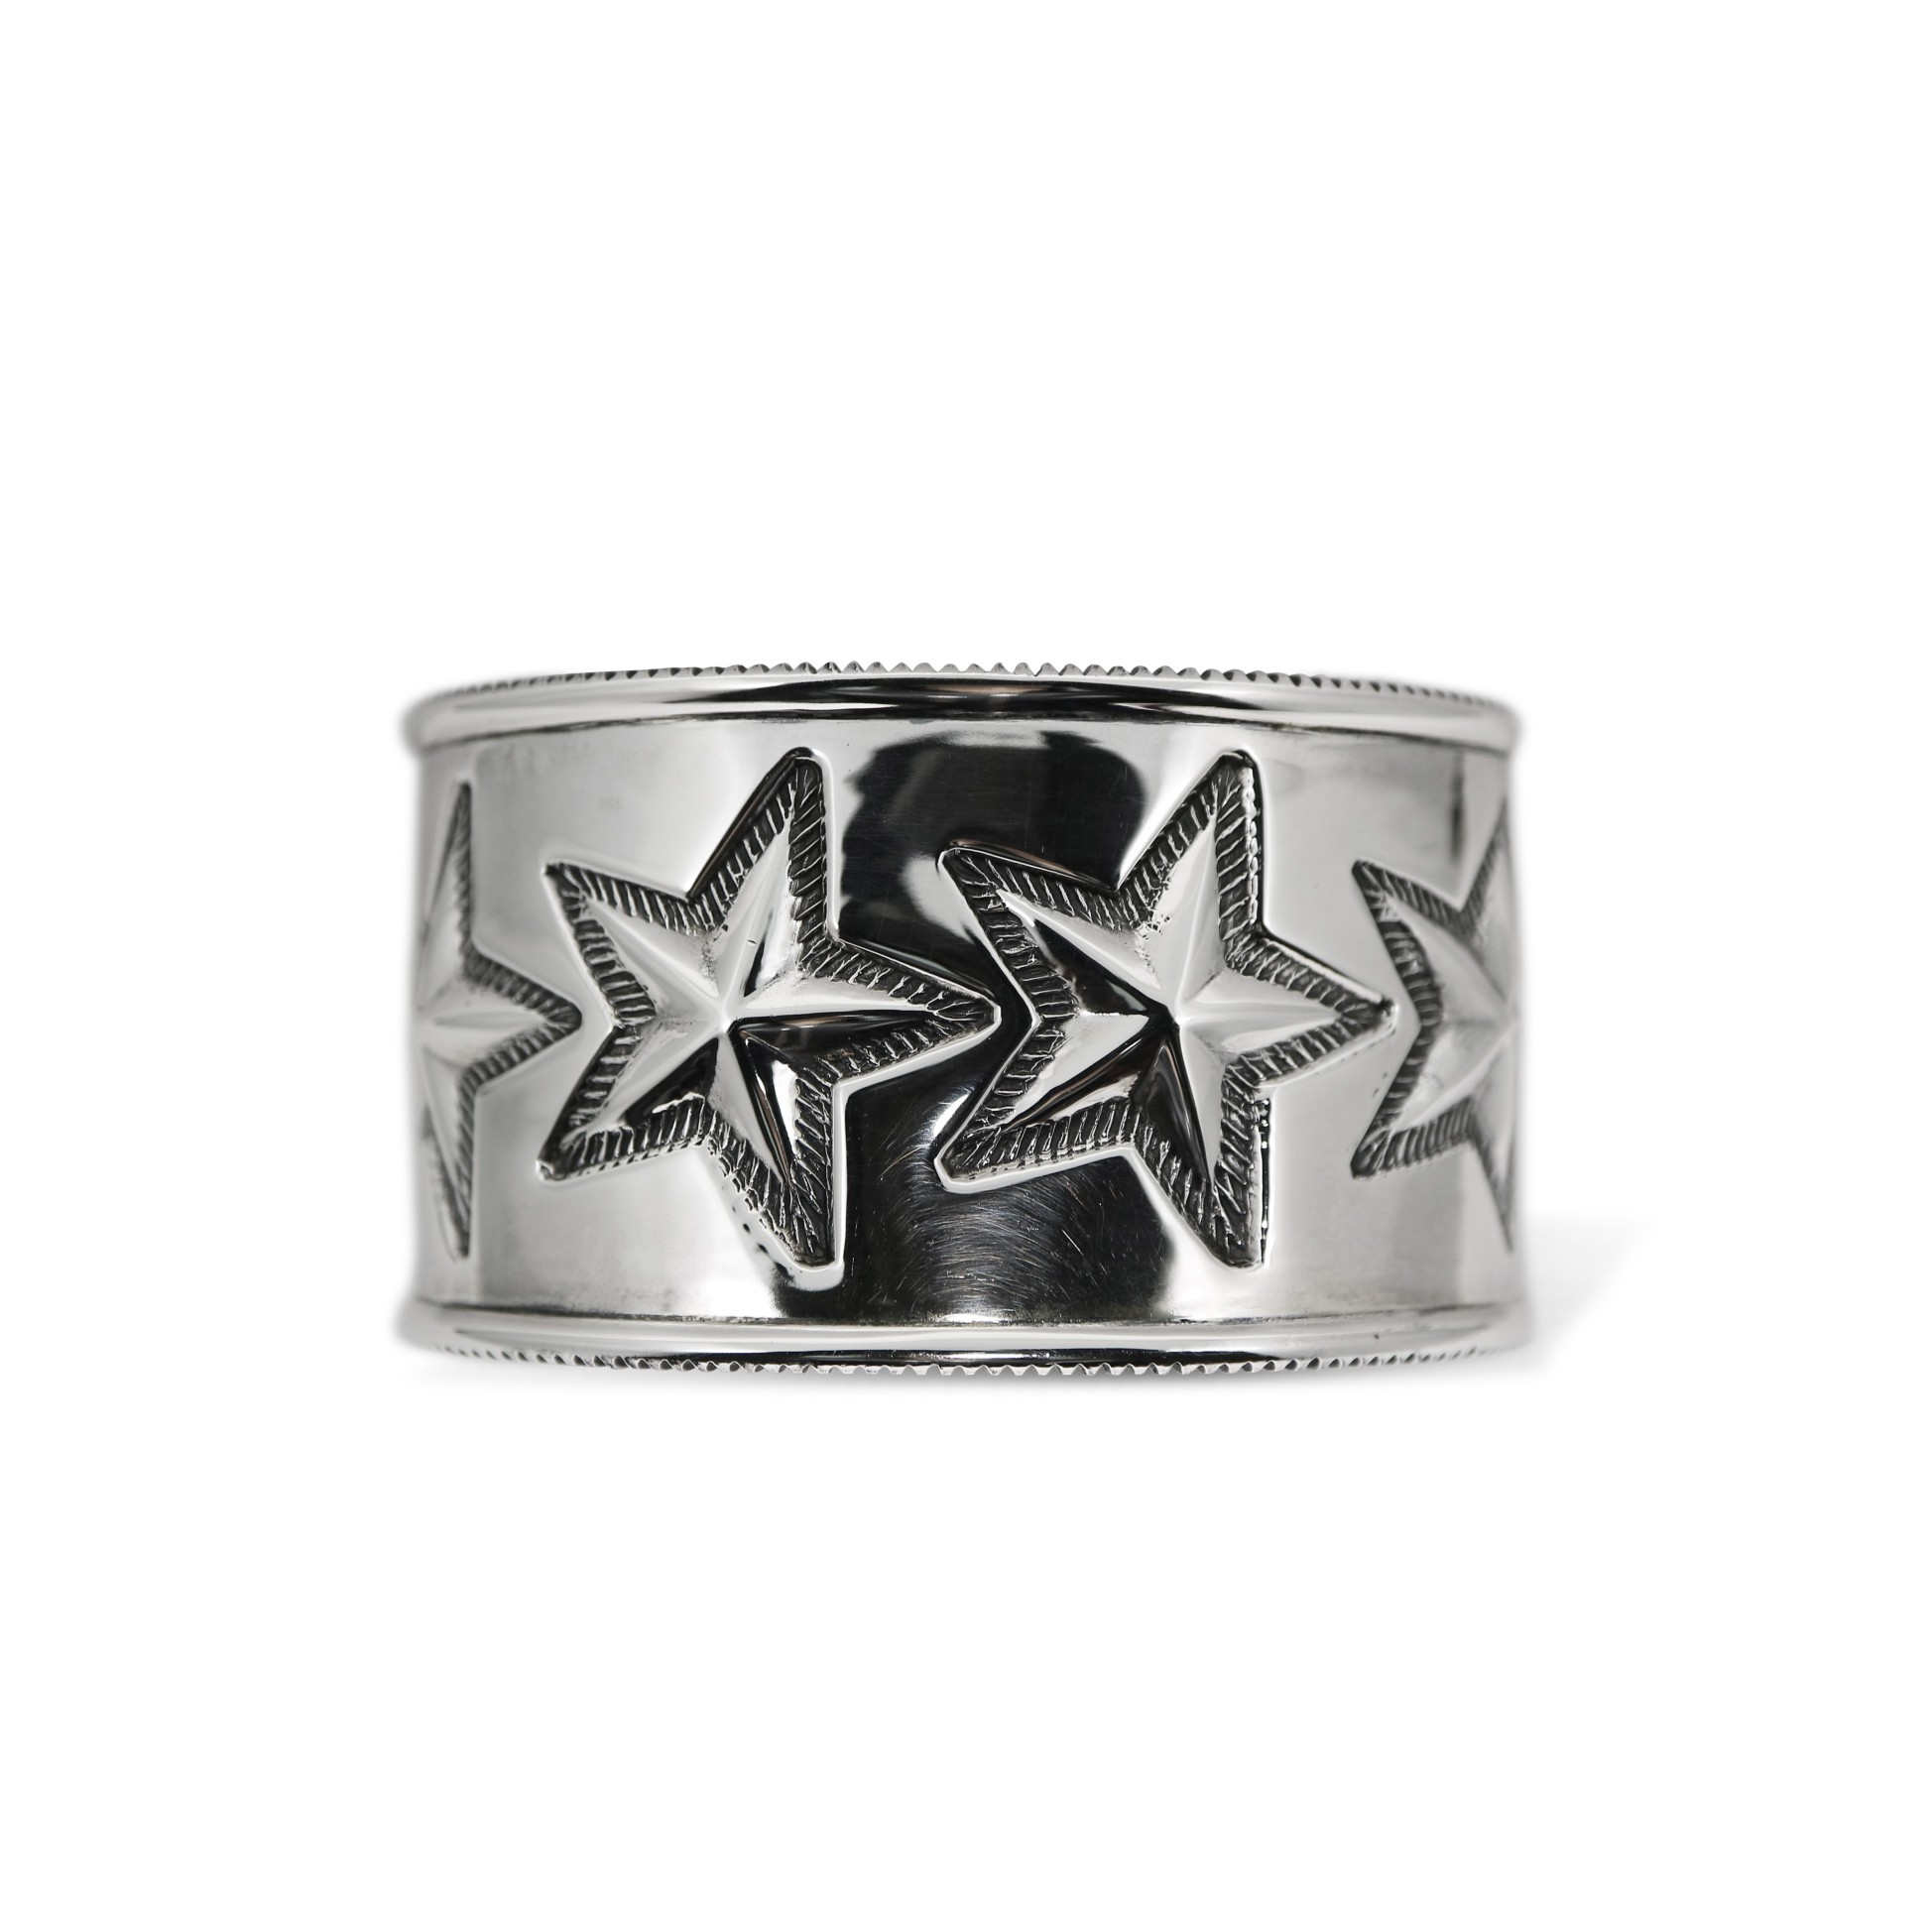 6 STAR COIN EDGE CUFF [USD $4100]